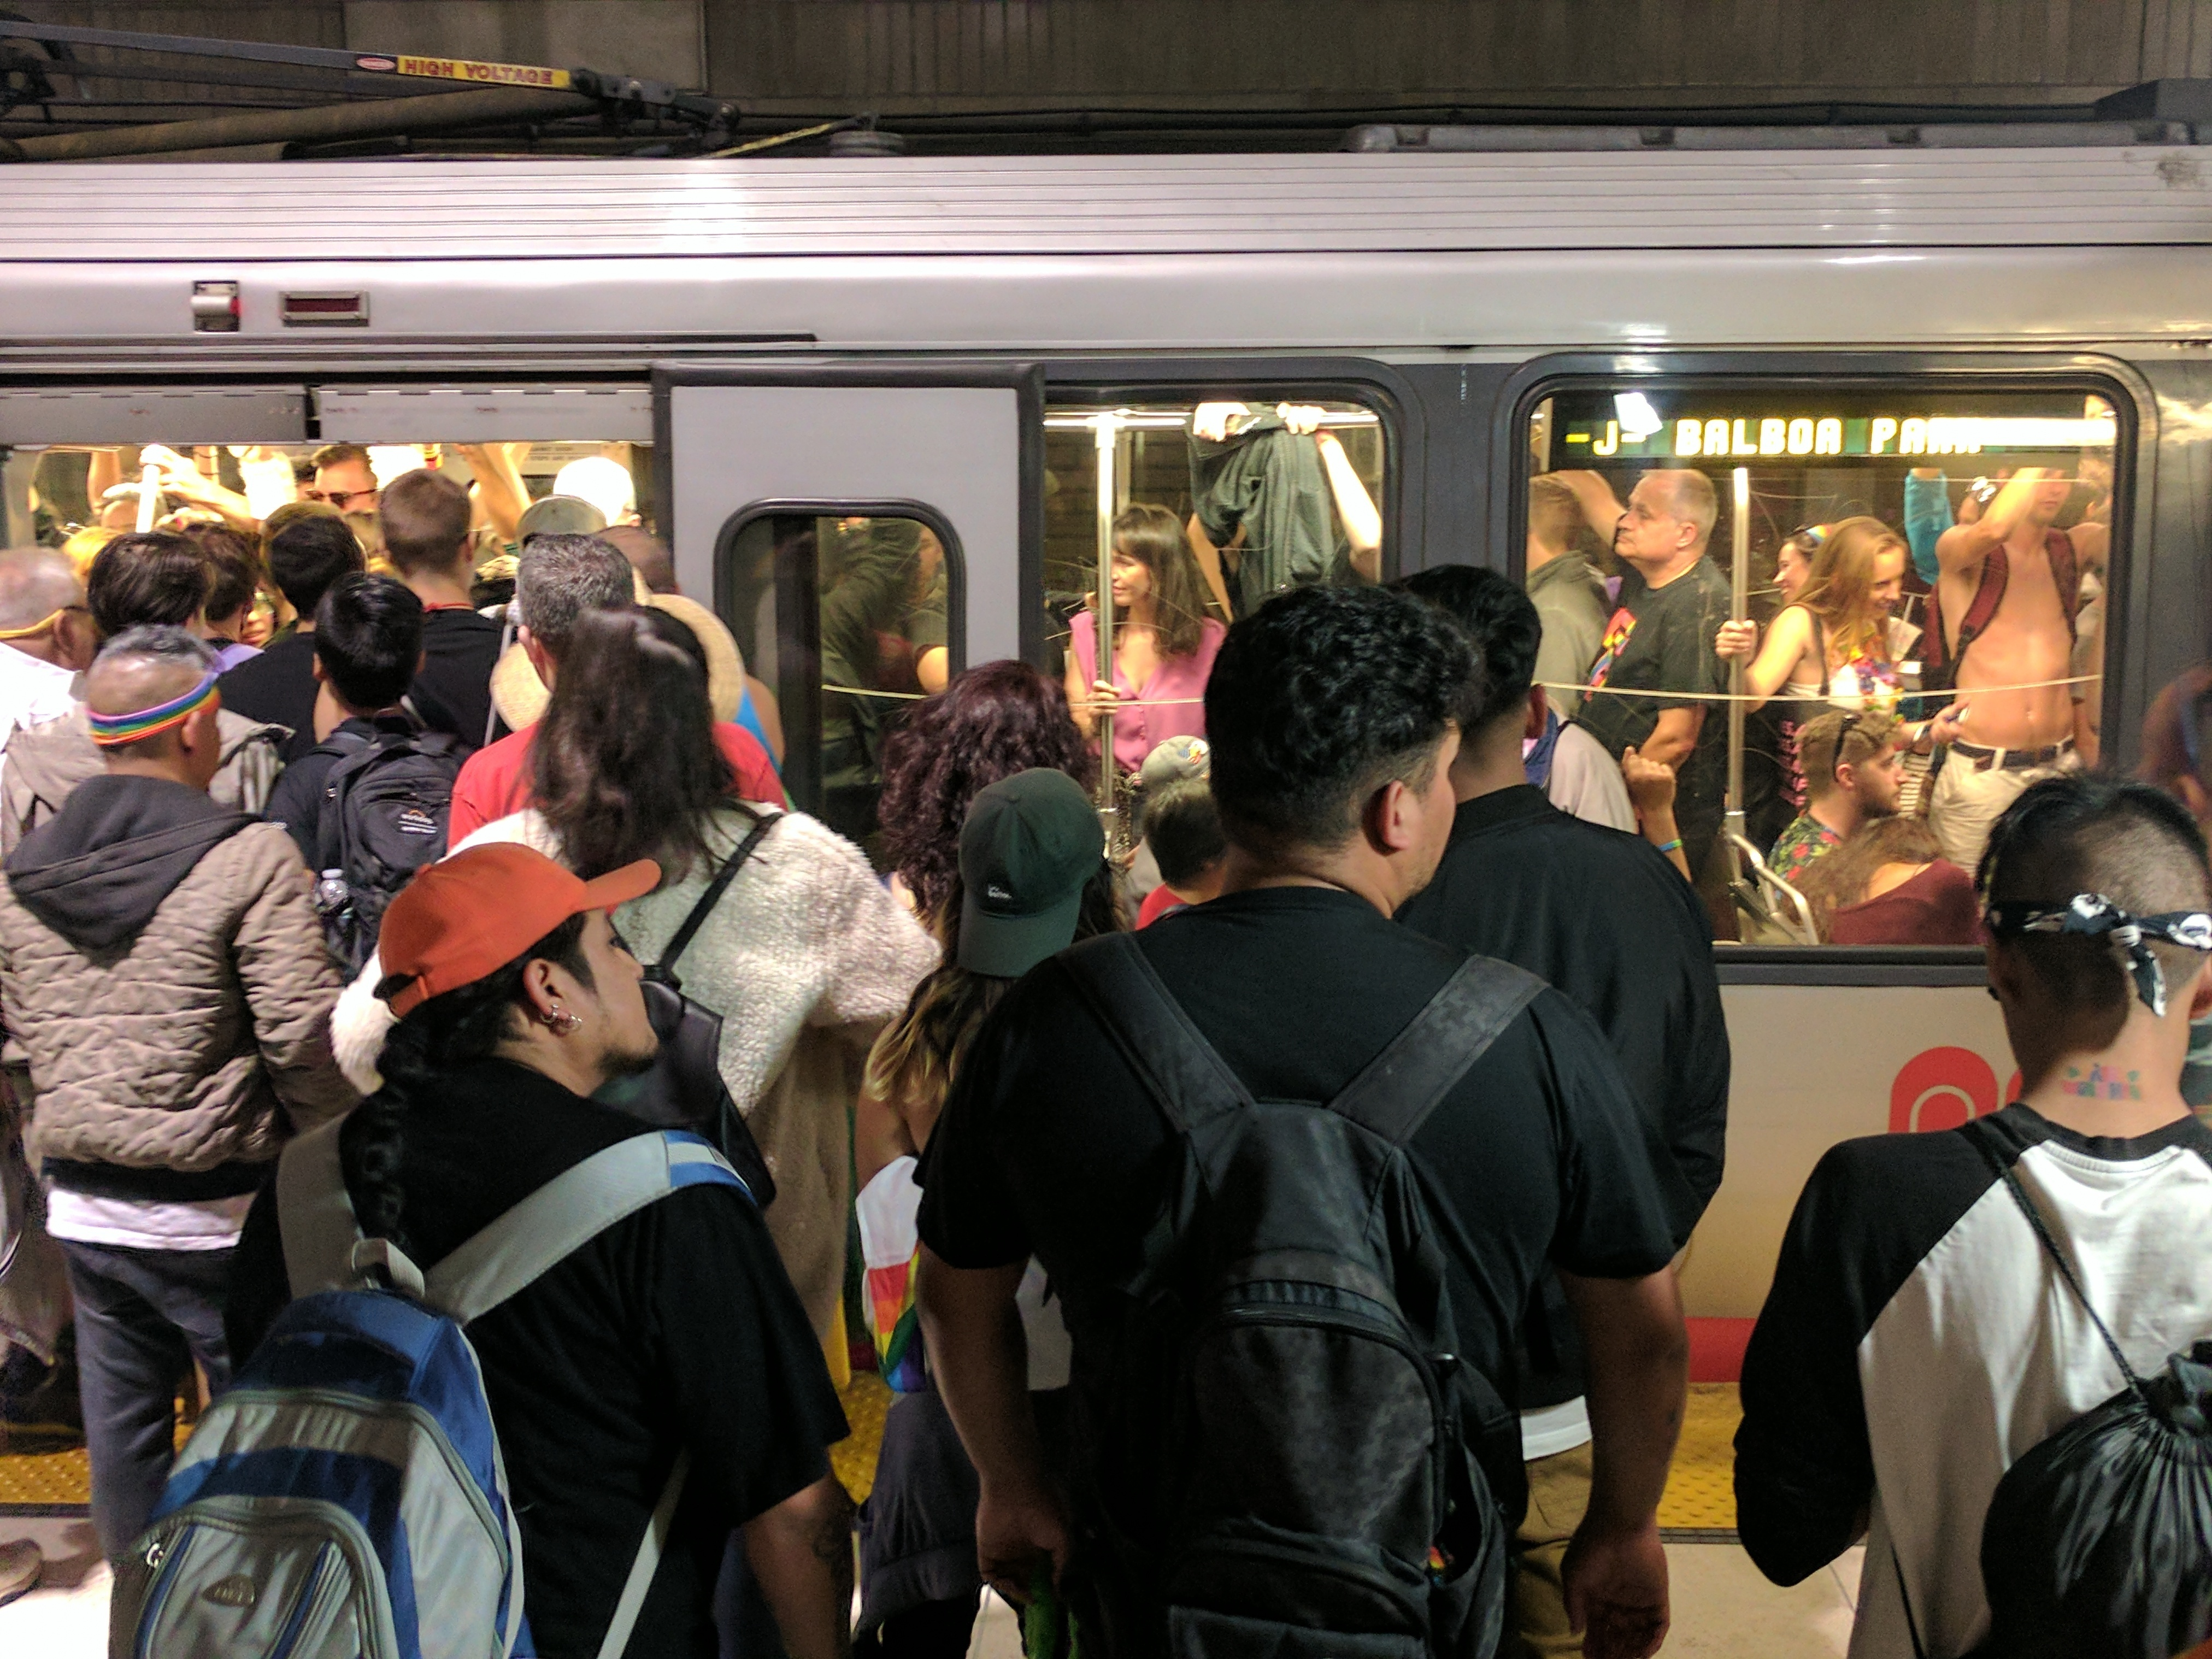 A crowd of people waiting to get on a subway.